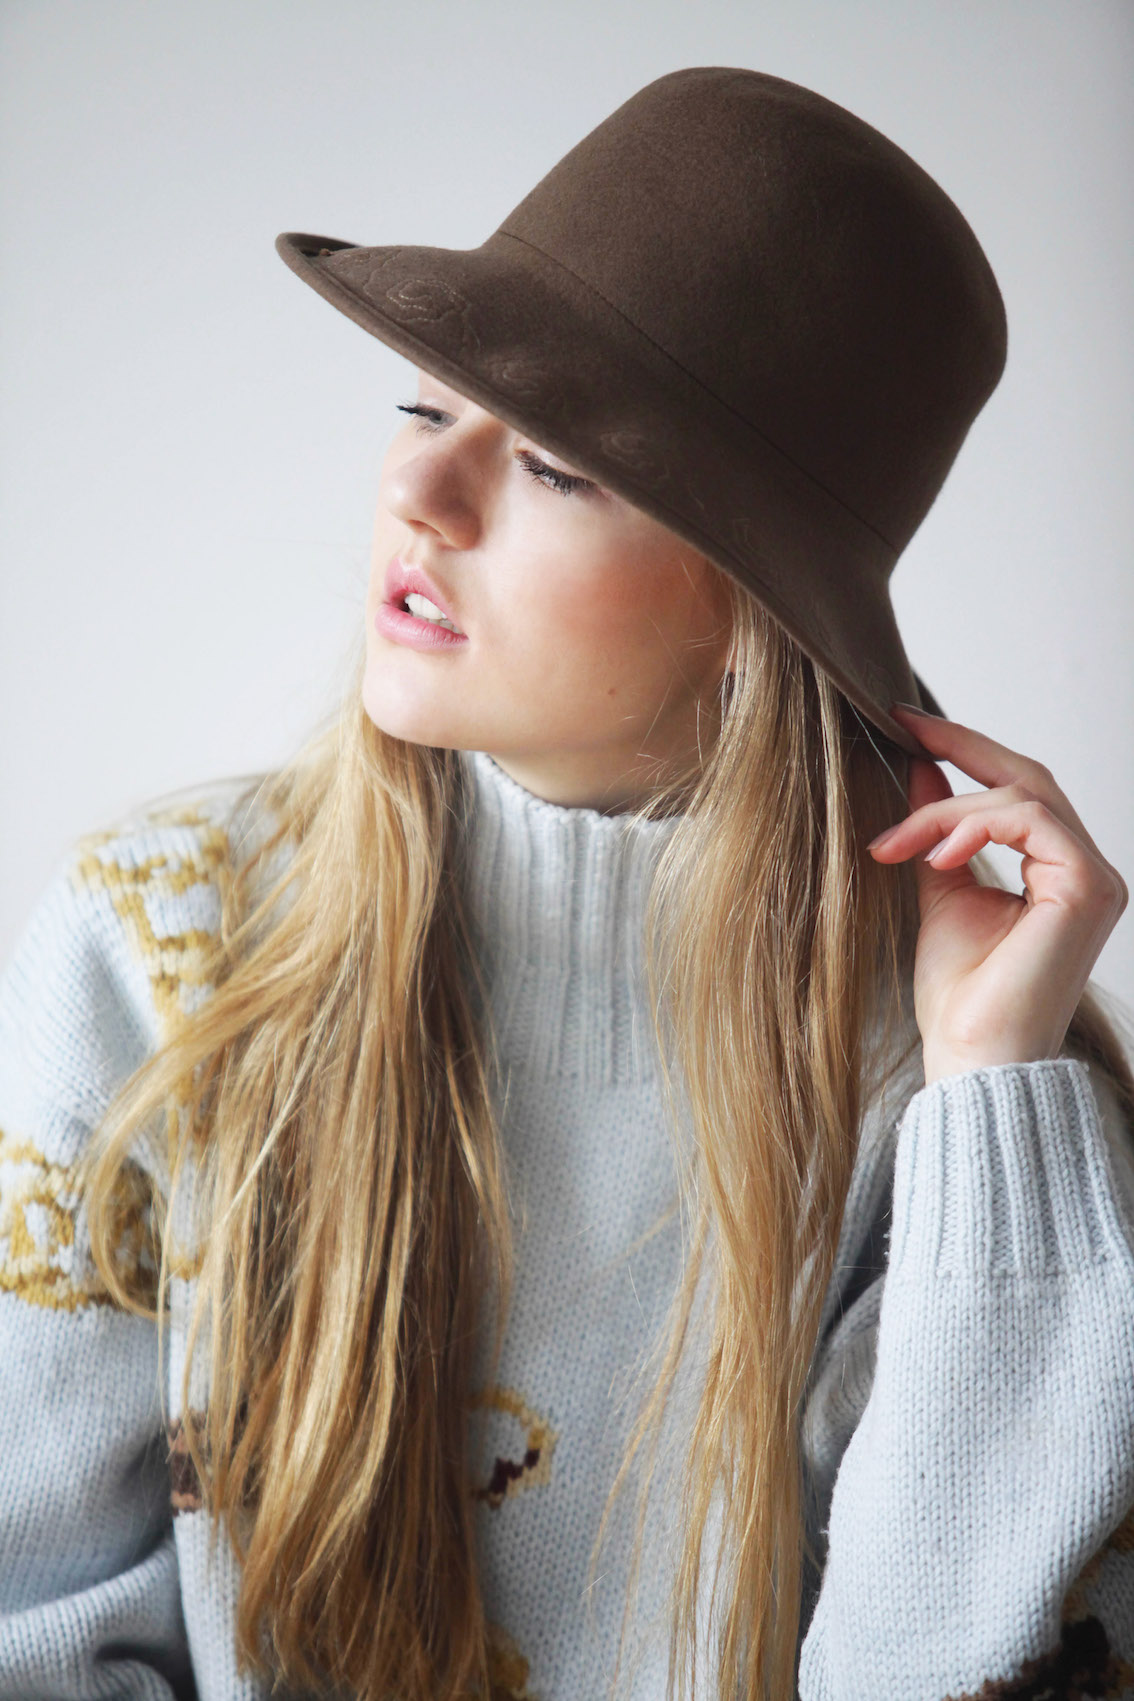 Floortjeloves, plan78, plan78 photography, hat, hat game, sweater, model, modeling, work, photography, polaroids, portraits